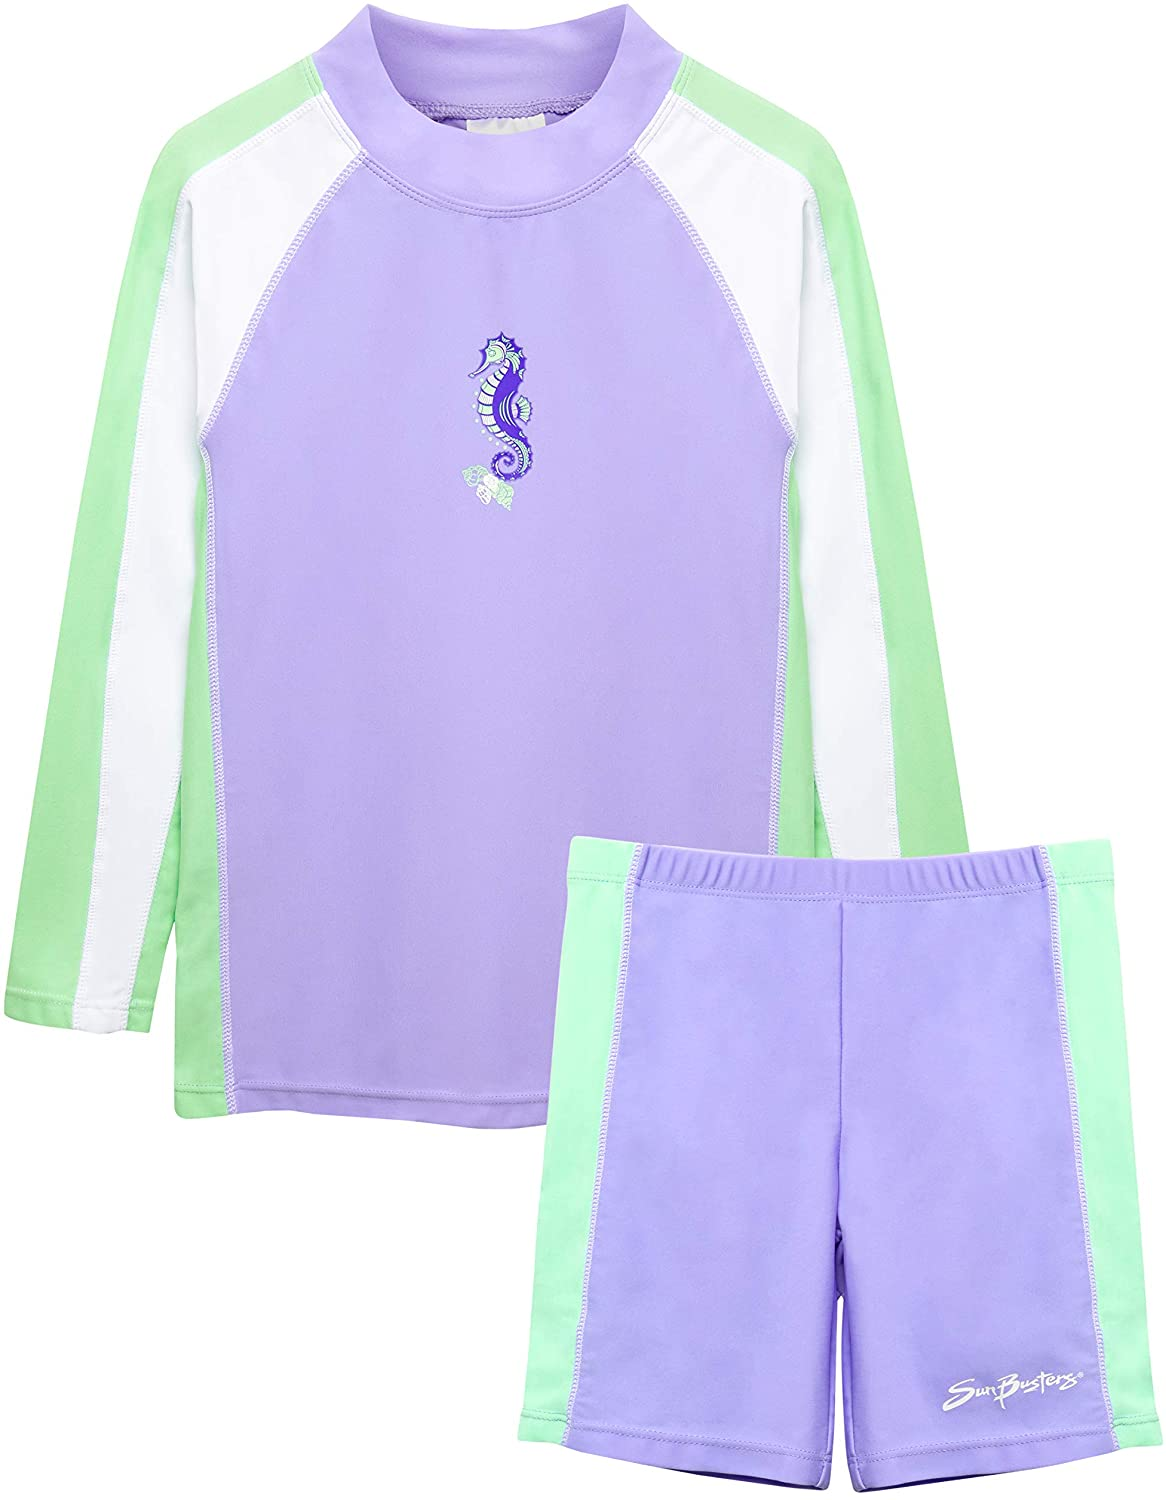 SunBusters Girls Two-Piece Long Sleeve Swimsuit Set, UPF 50+ Sun Protection